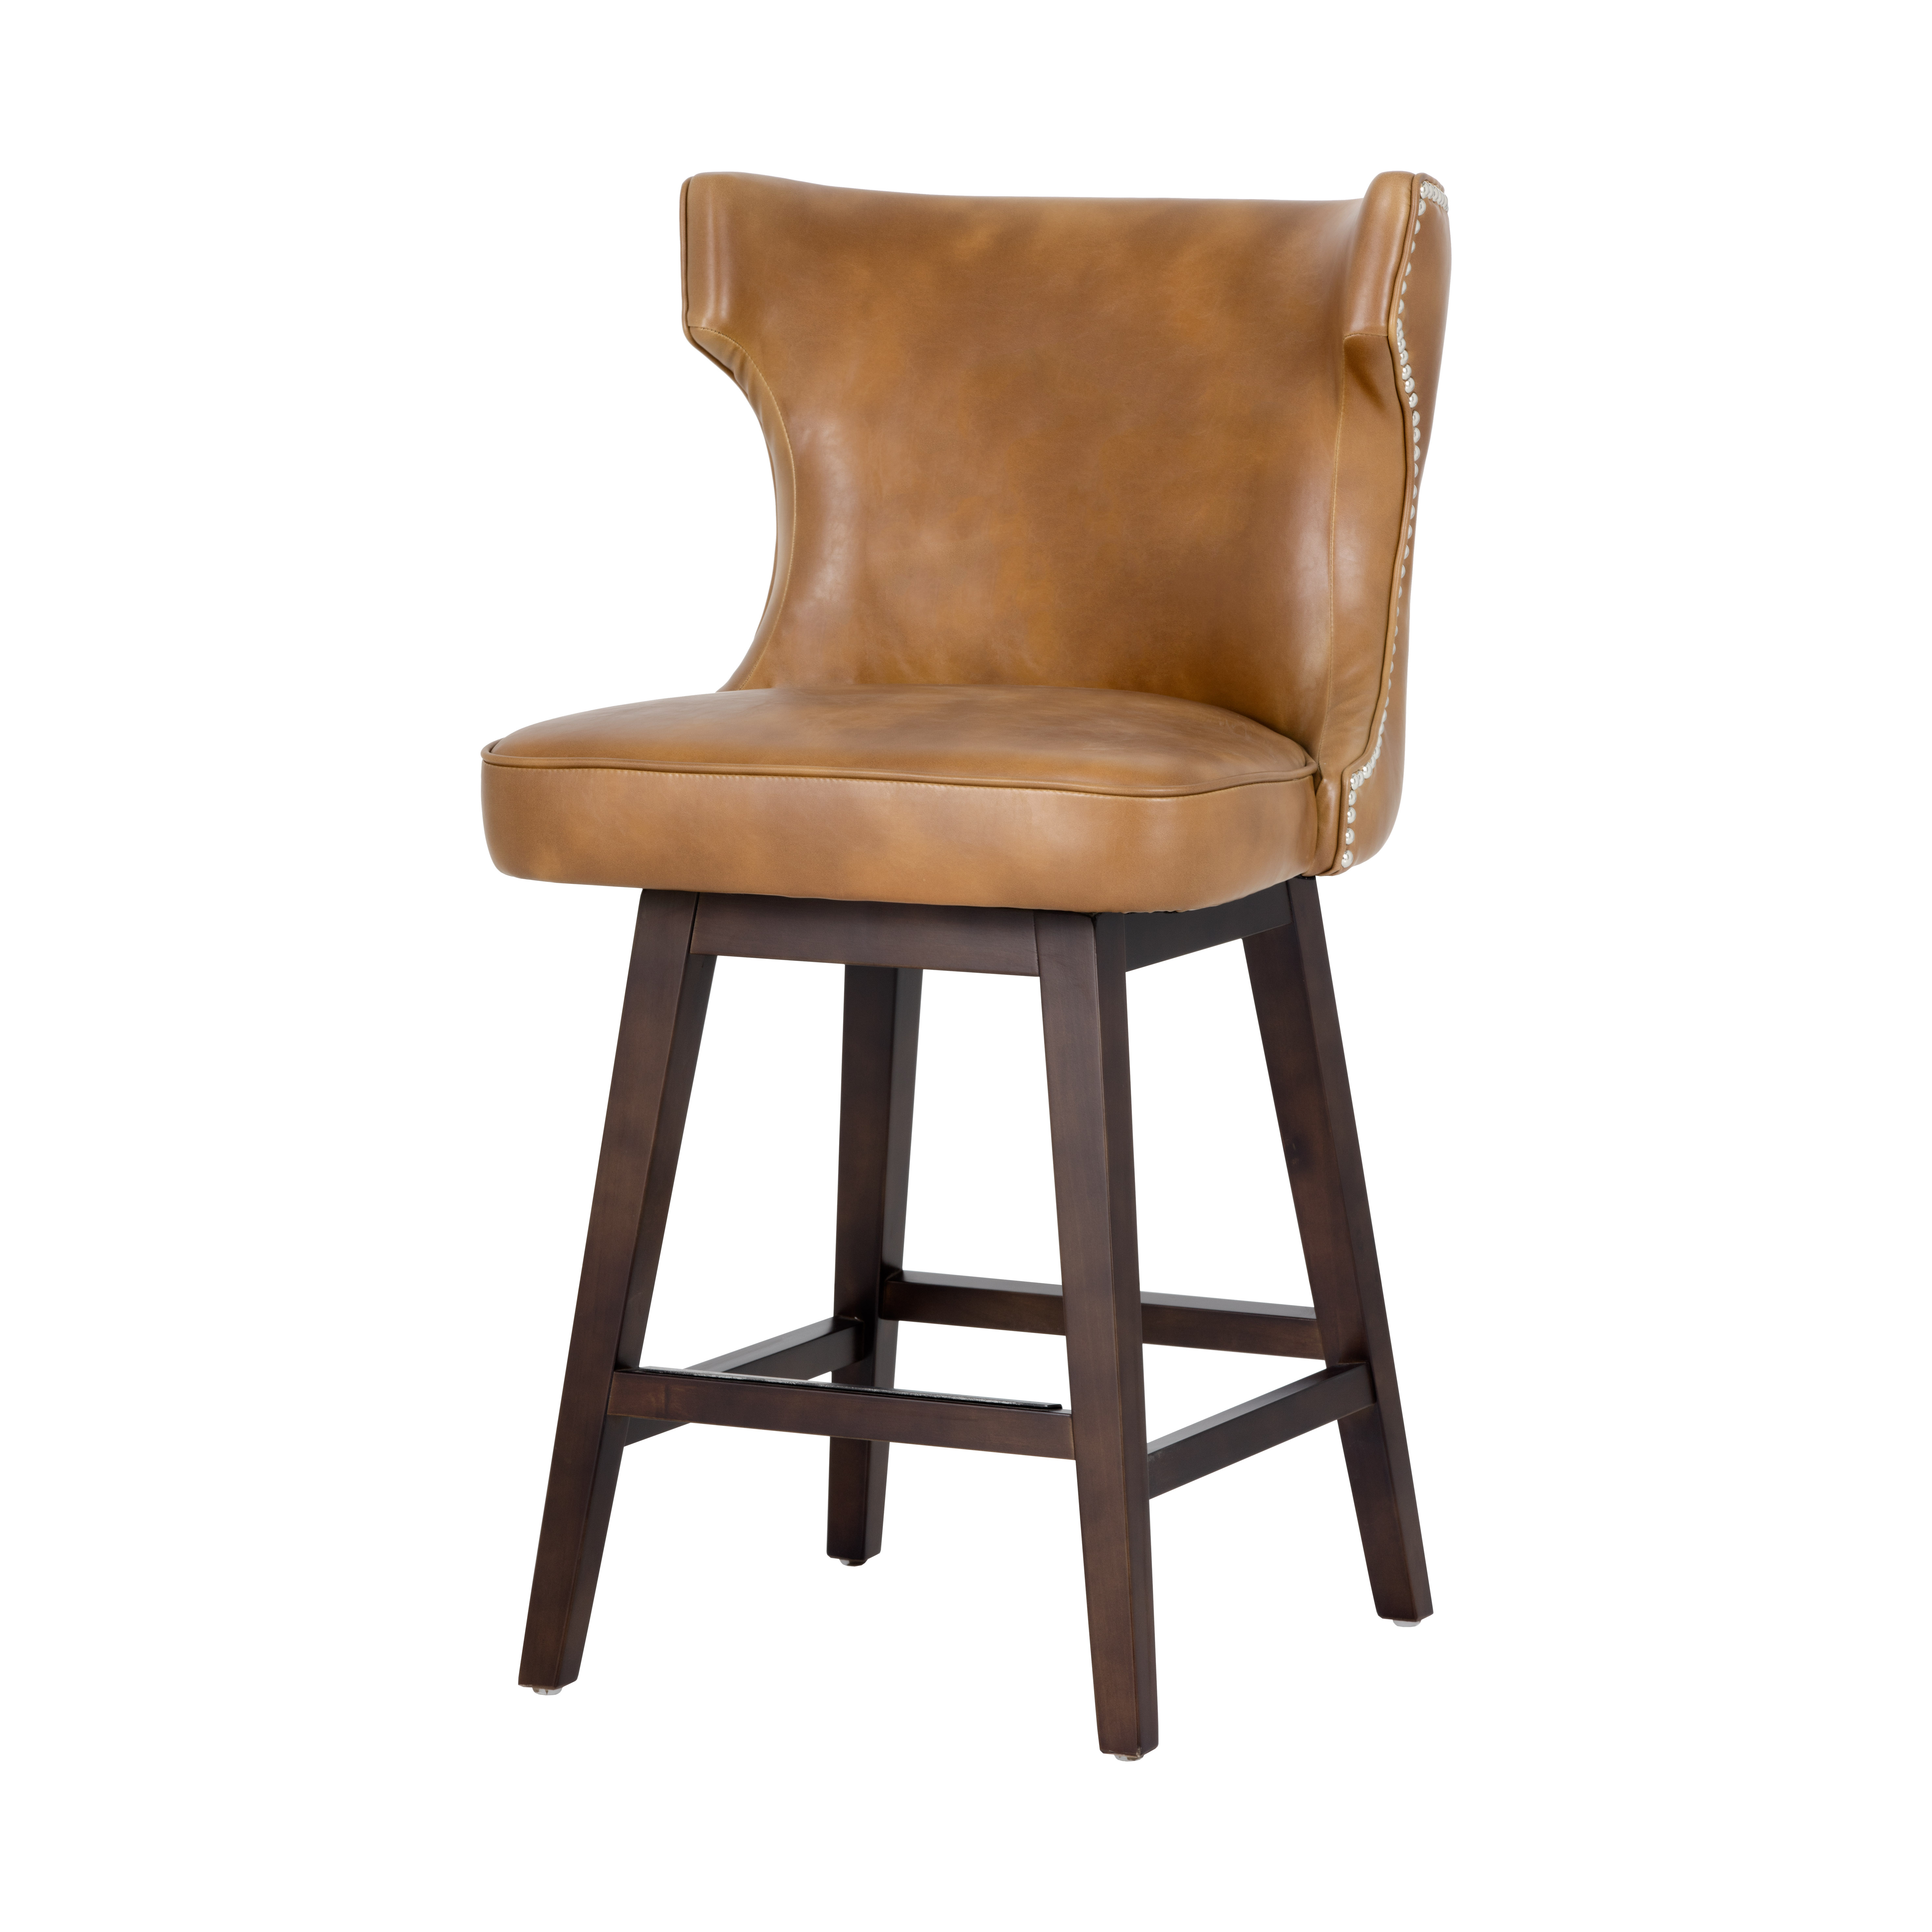 Latest Swivel Tobacco Leather Chairs In Neville Swivel Counter Stool – Tobacco Tansunpan Furniture (View 12 of 20)